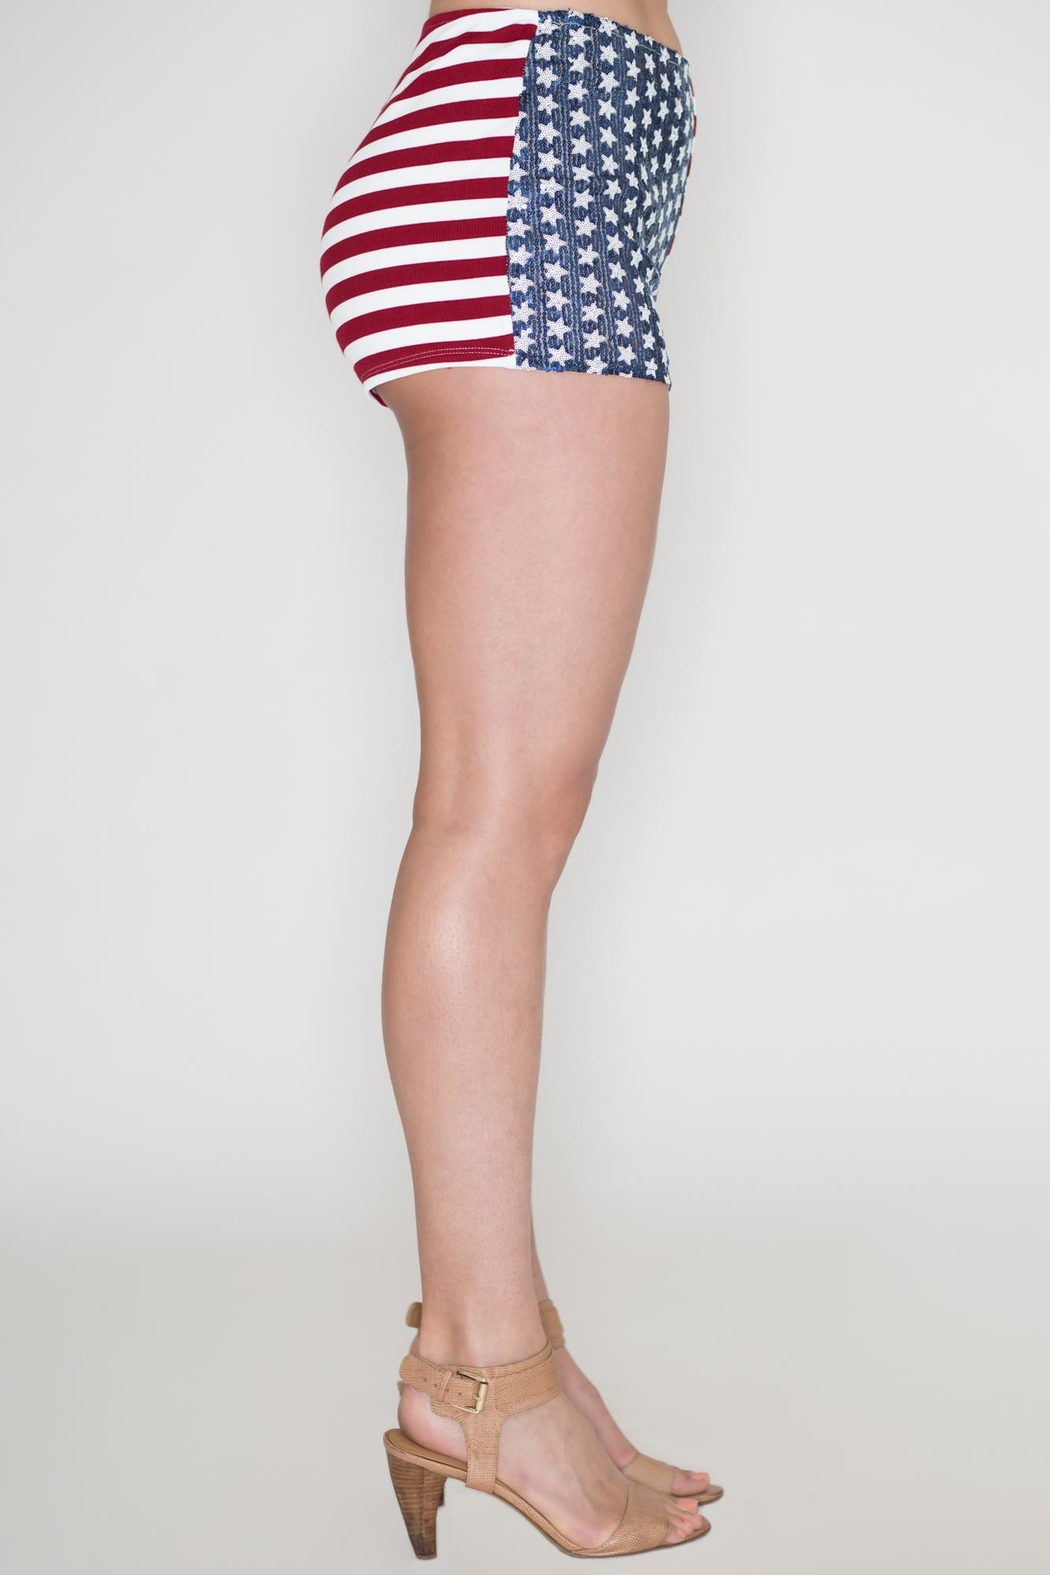 Bear Dance American Flag Shorts - Side Cropped Image